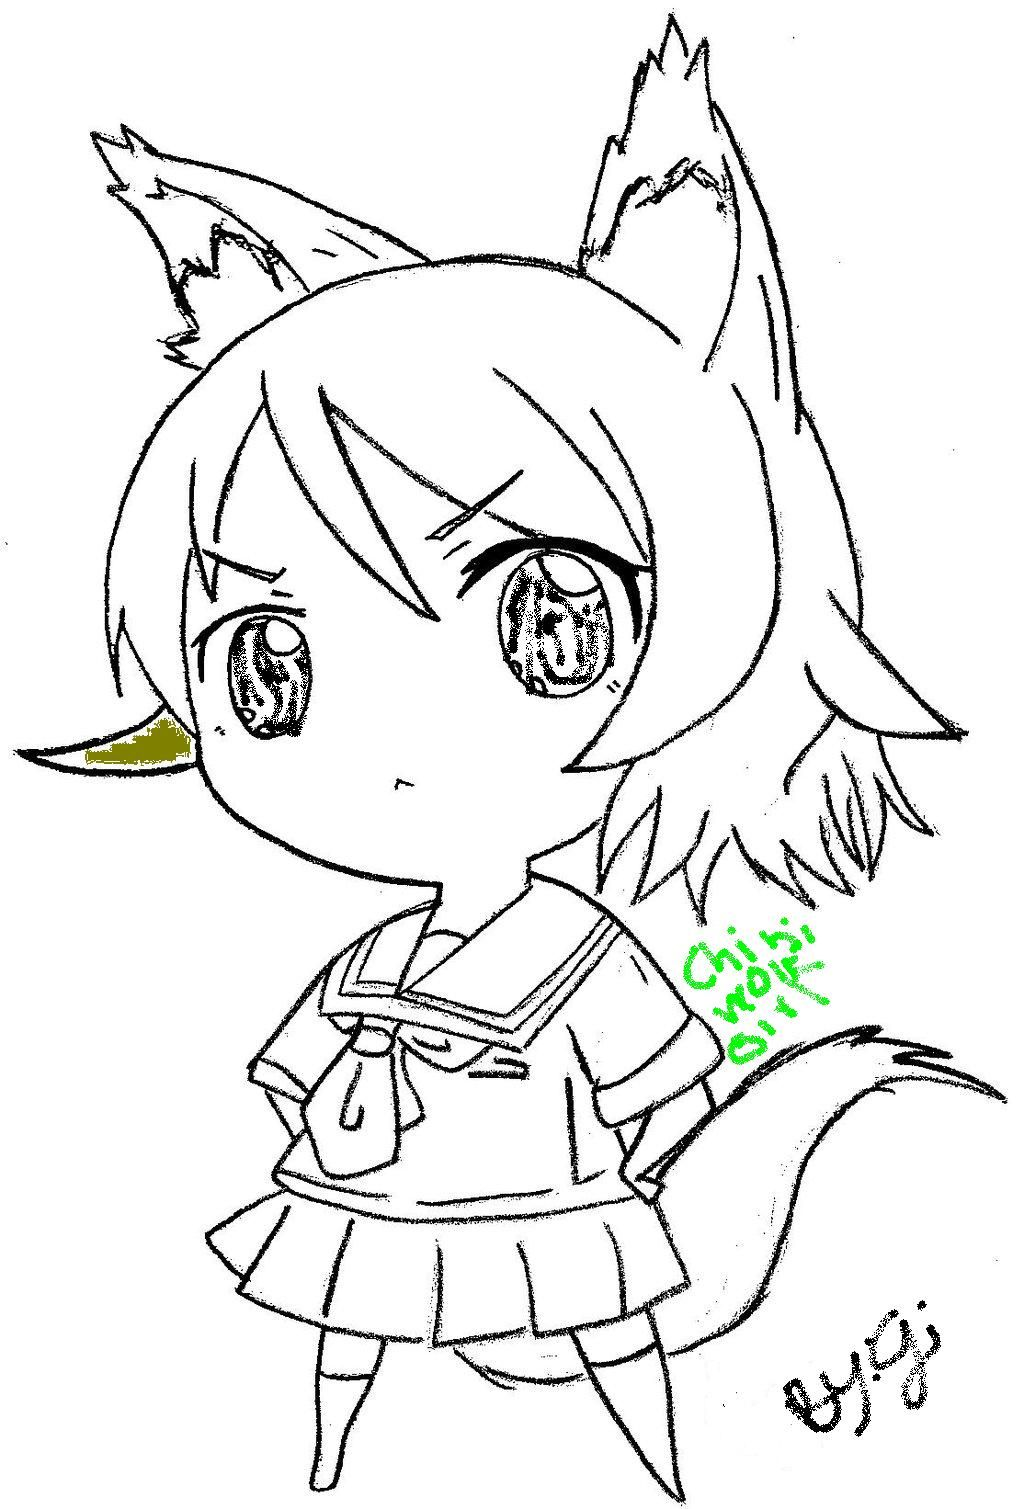 Chibi Wolf Girl Drawing Ipod123410 C 2016 Jun 19 2012 Anime Wolf Anime Wolf Girl Mermaid Coloring Pages